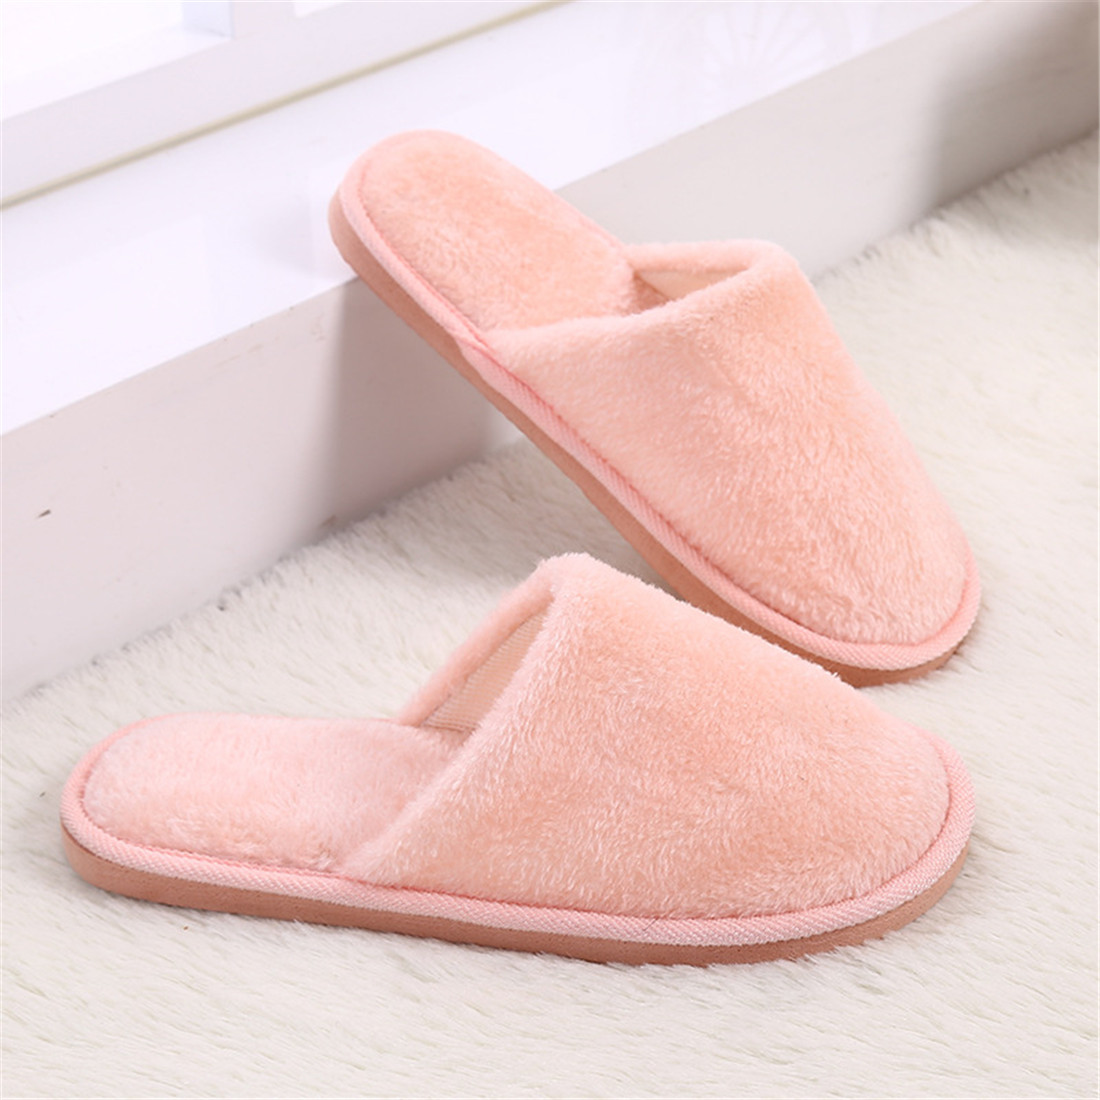 warm bedroom slippers 28 images warm womens or mens bedroom slippers for hotel winter plush. Black Bedroom Furniture Sets. Home Design Ideas